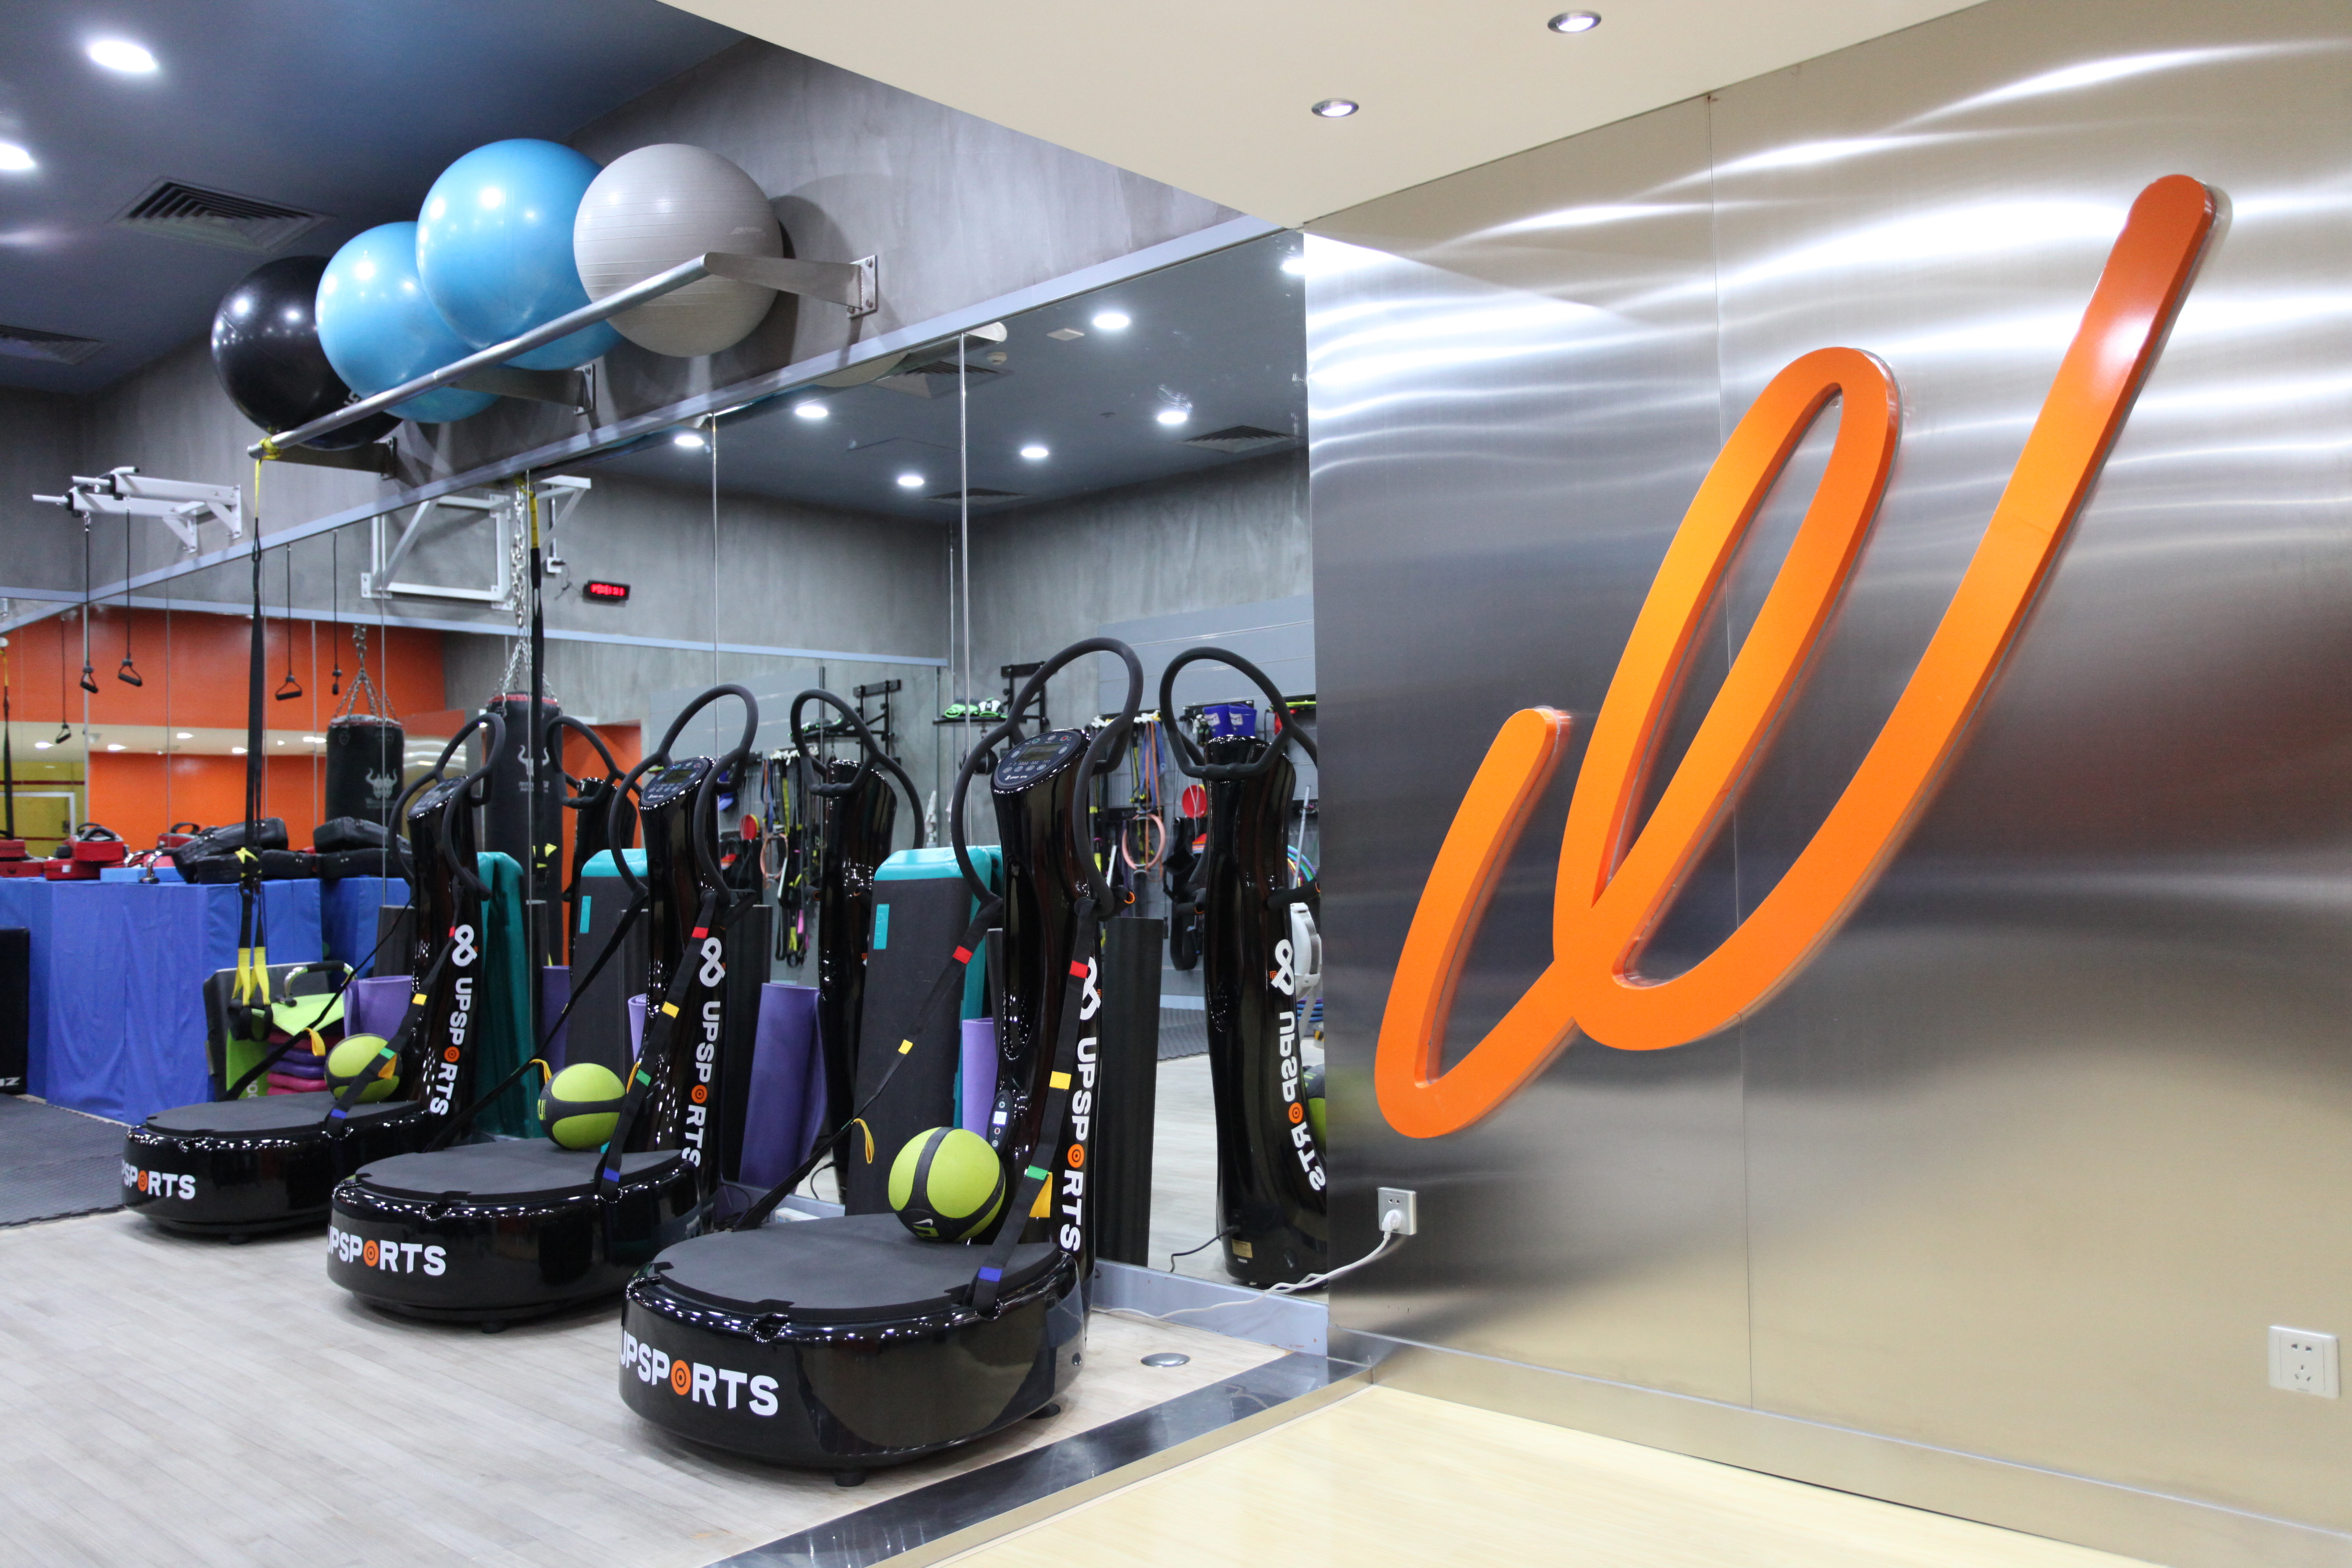 Shanghai Wellness Expert Fitness Studio Meetup